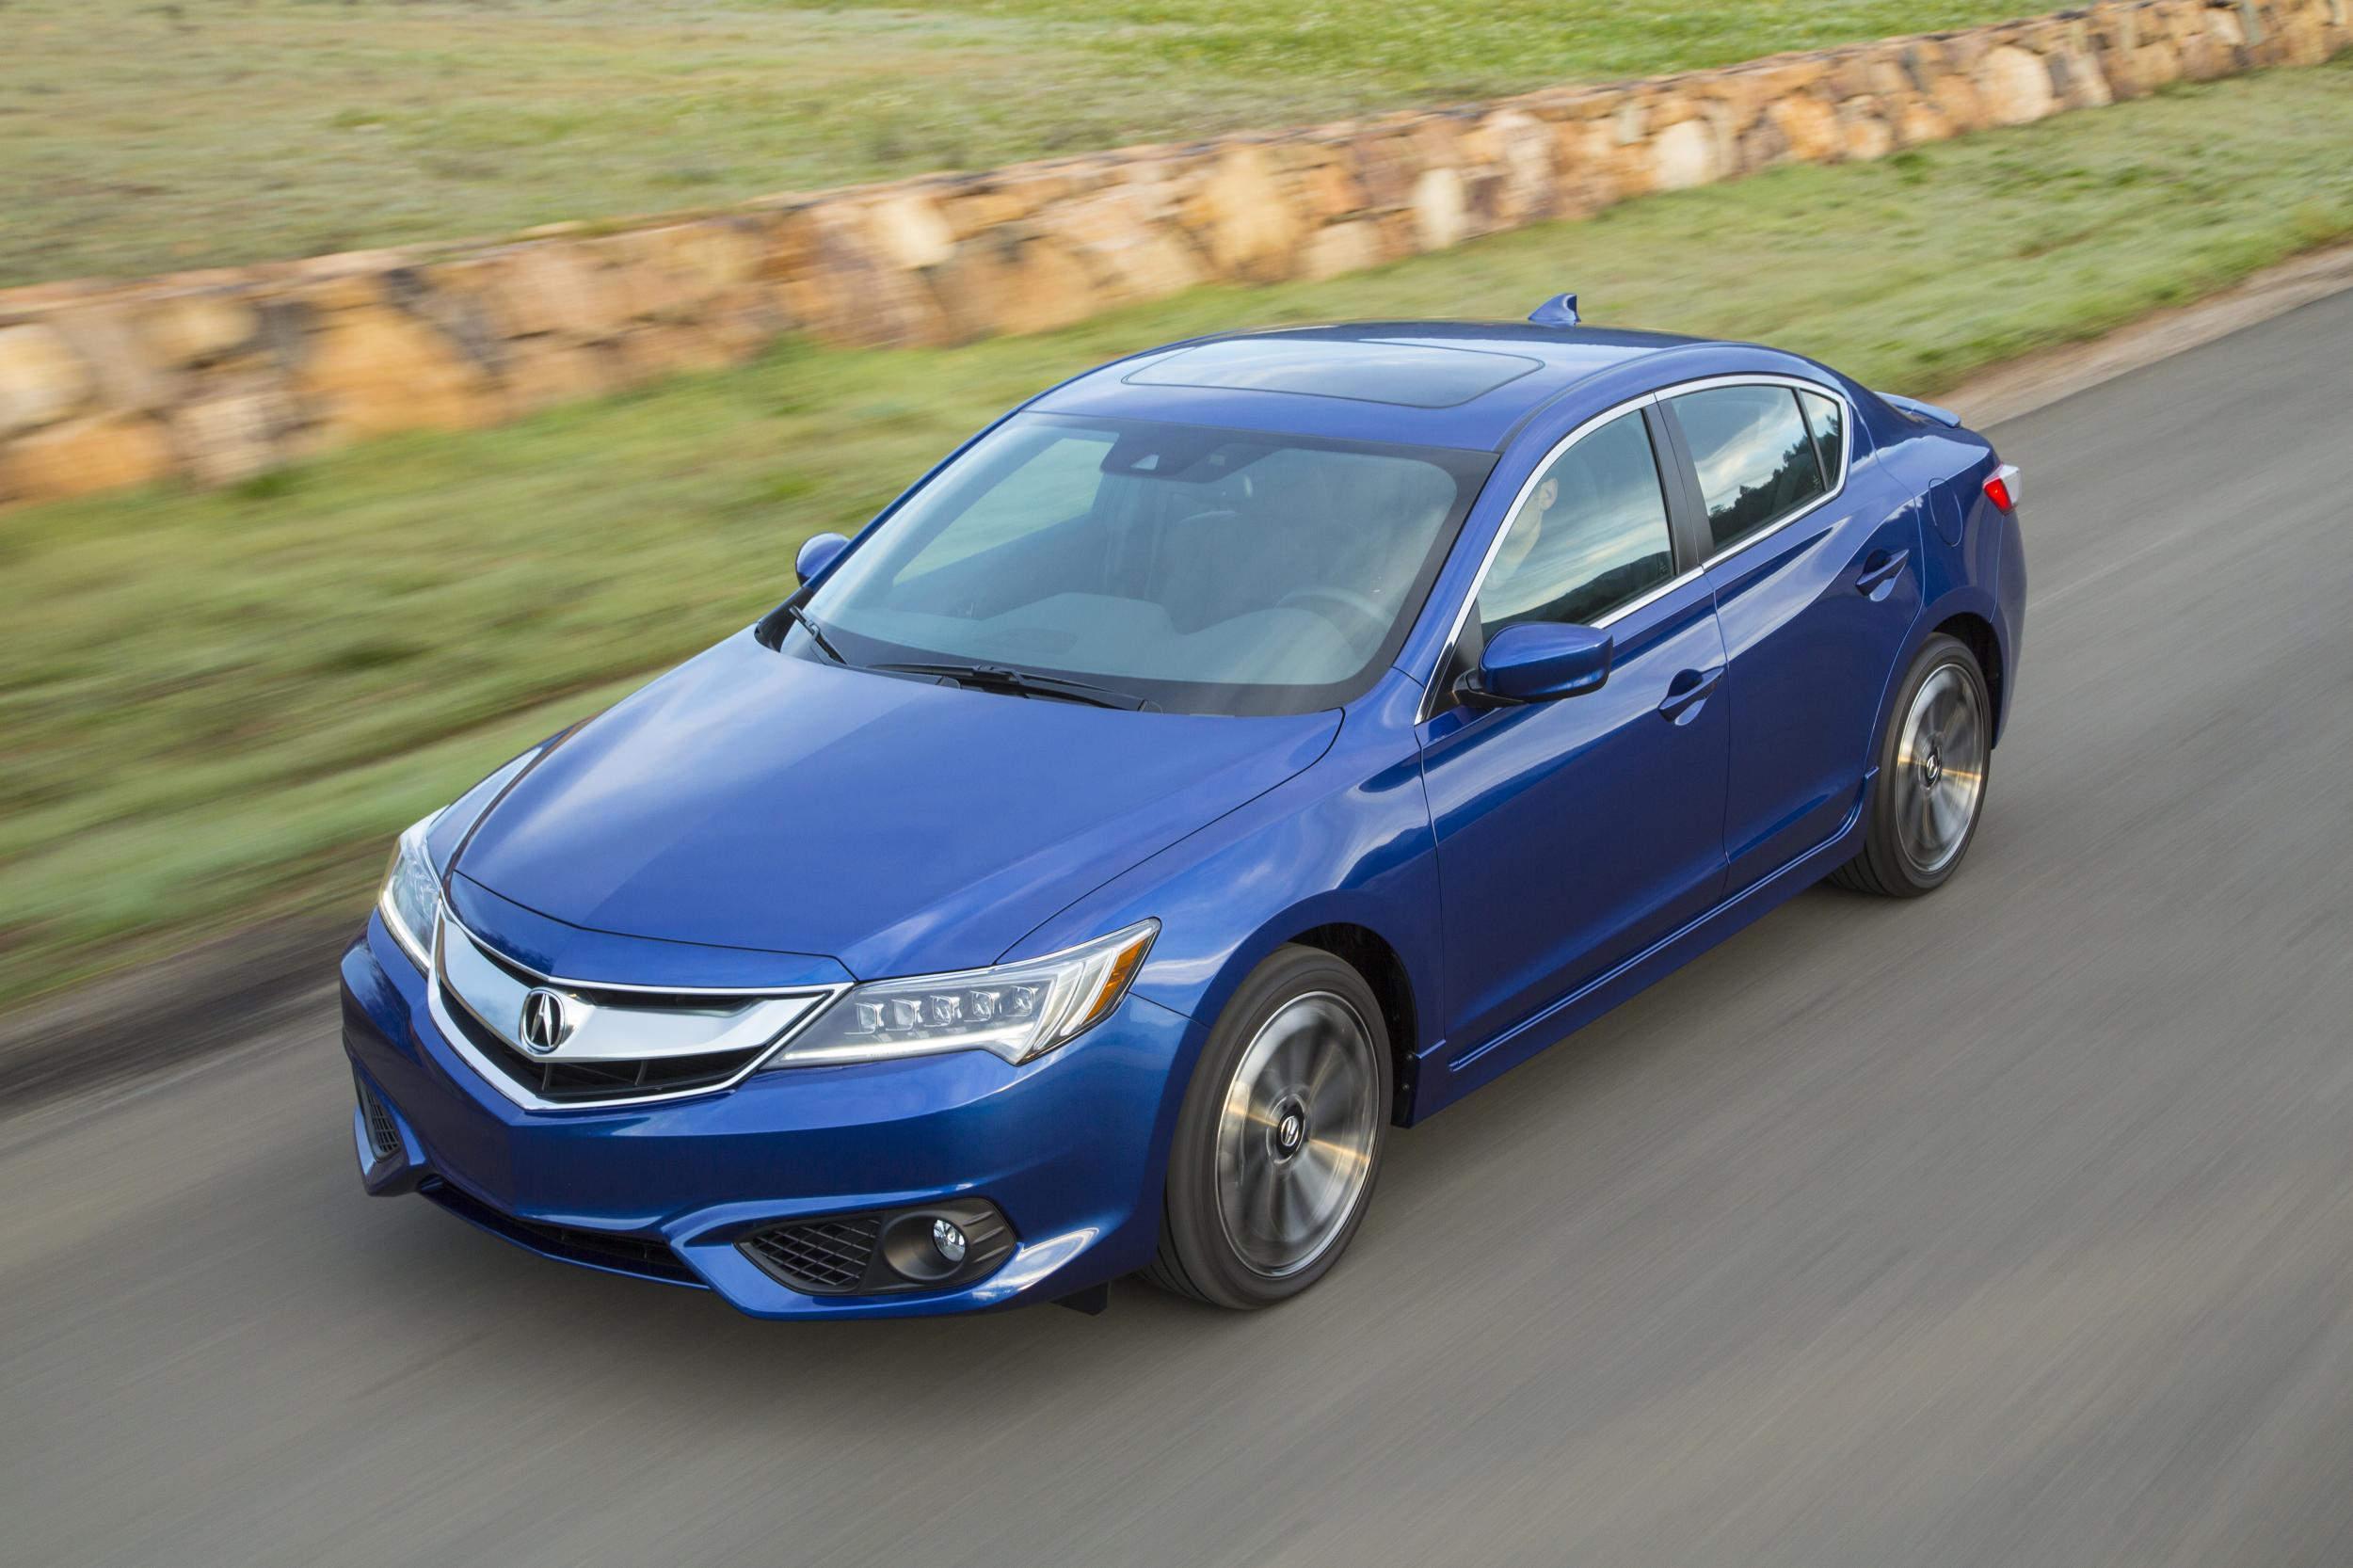 2016 acura ilx pricing and fuel economy ratings divulged